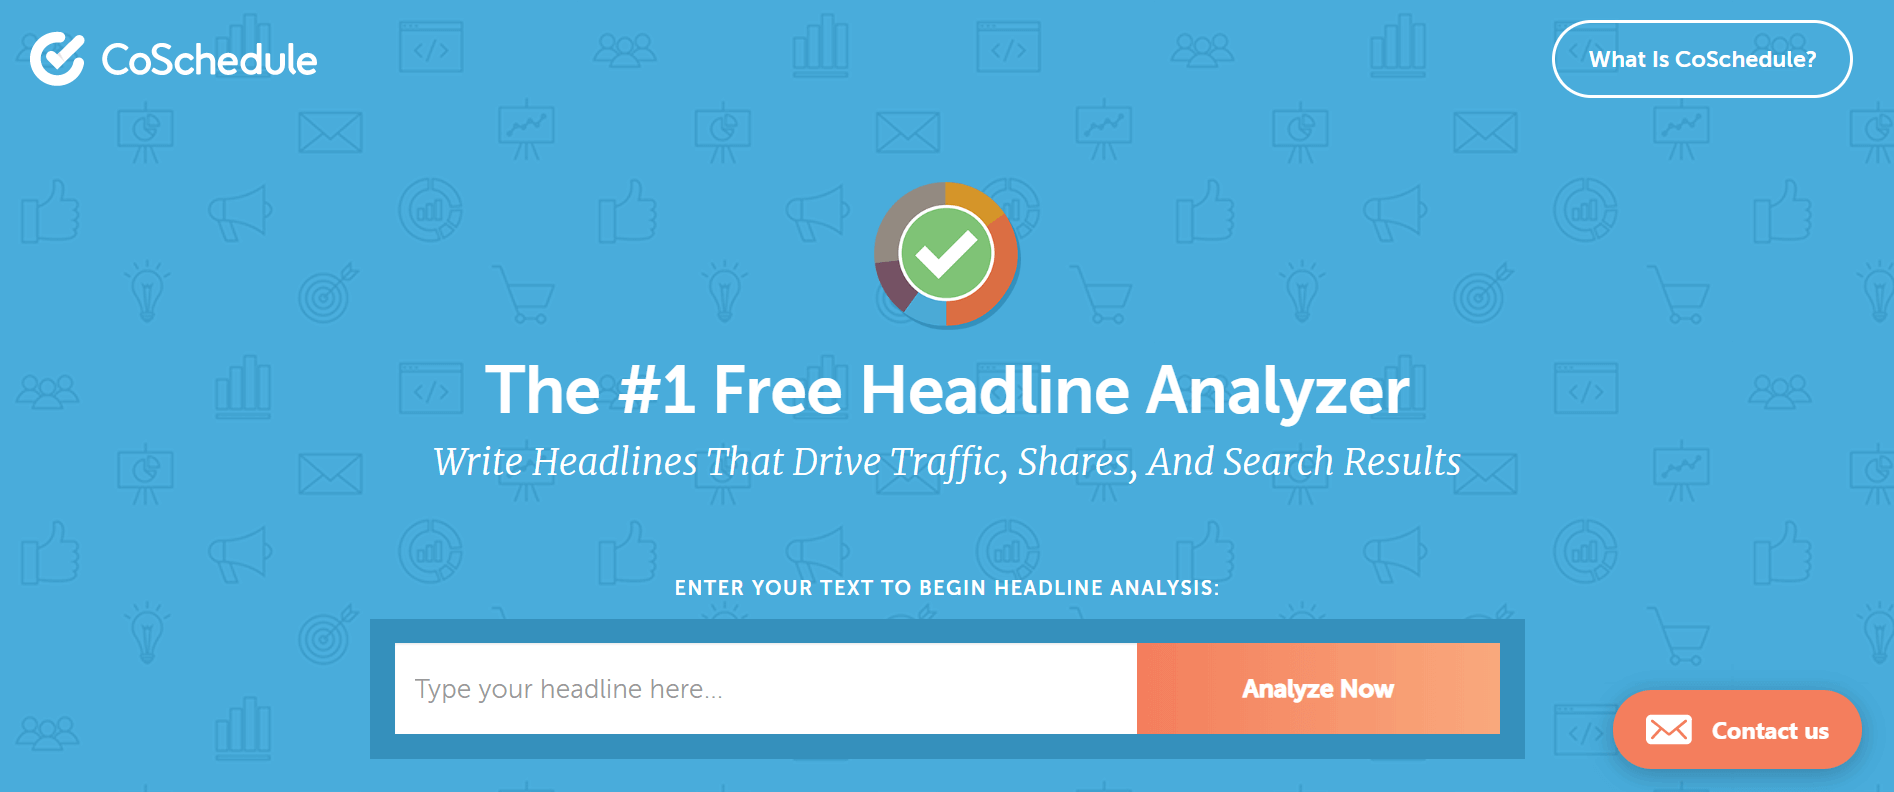 A screenshot of Coschedule's headline analyzer. Getting headlines analyzed is a content marketing hack that works.